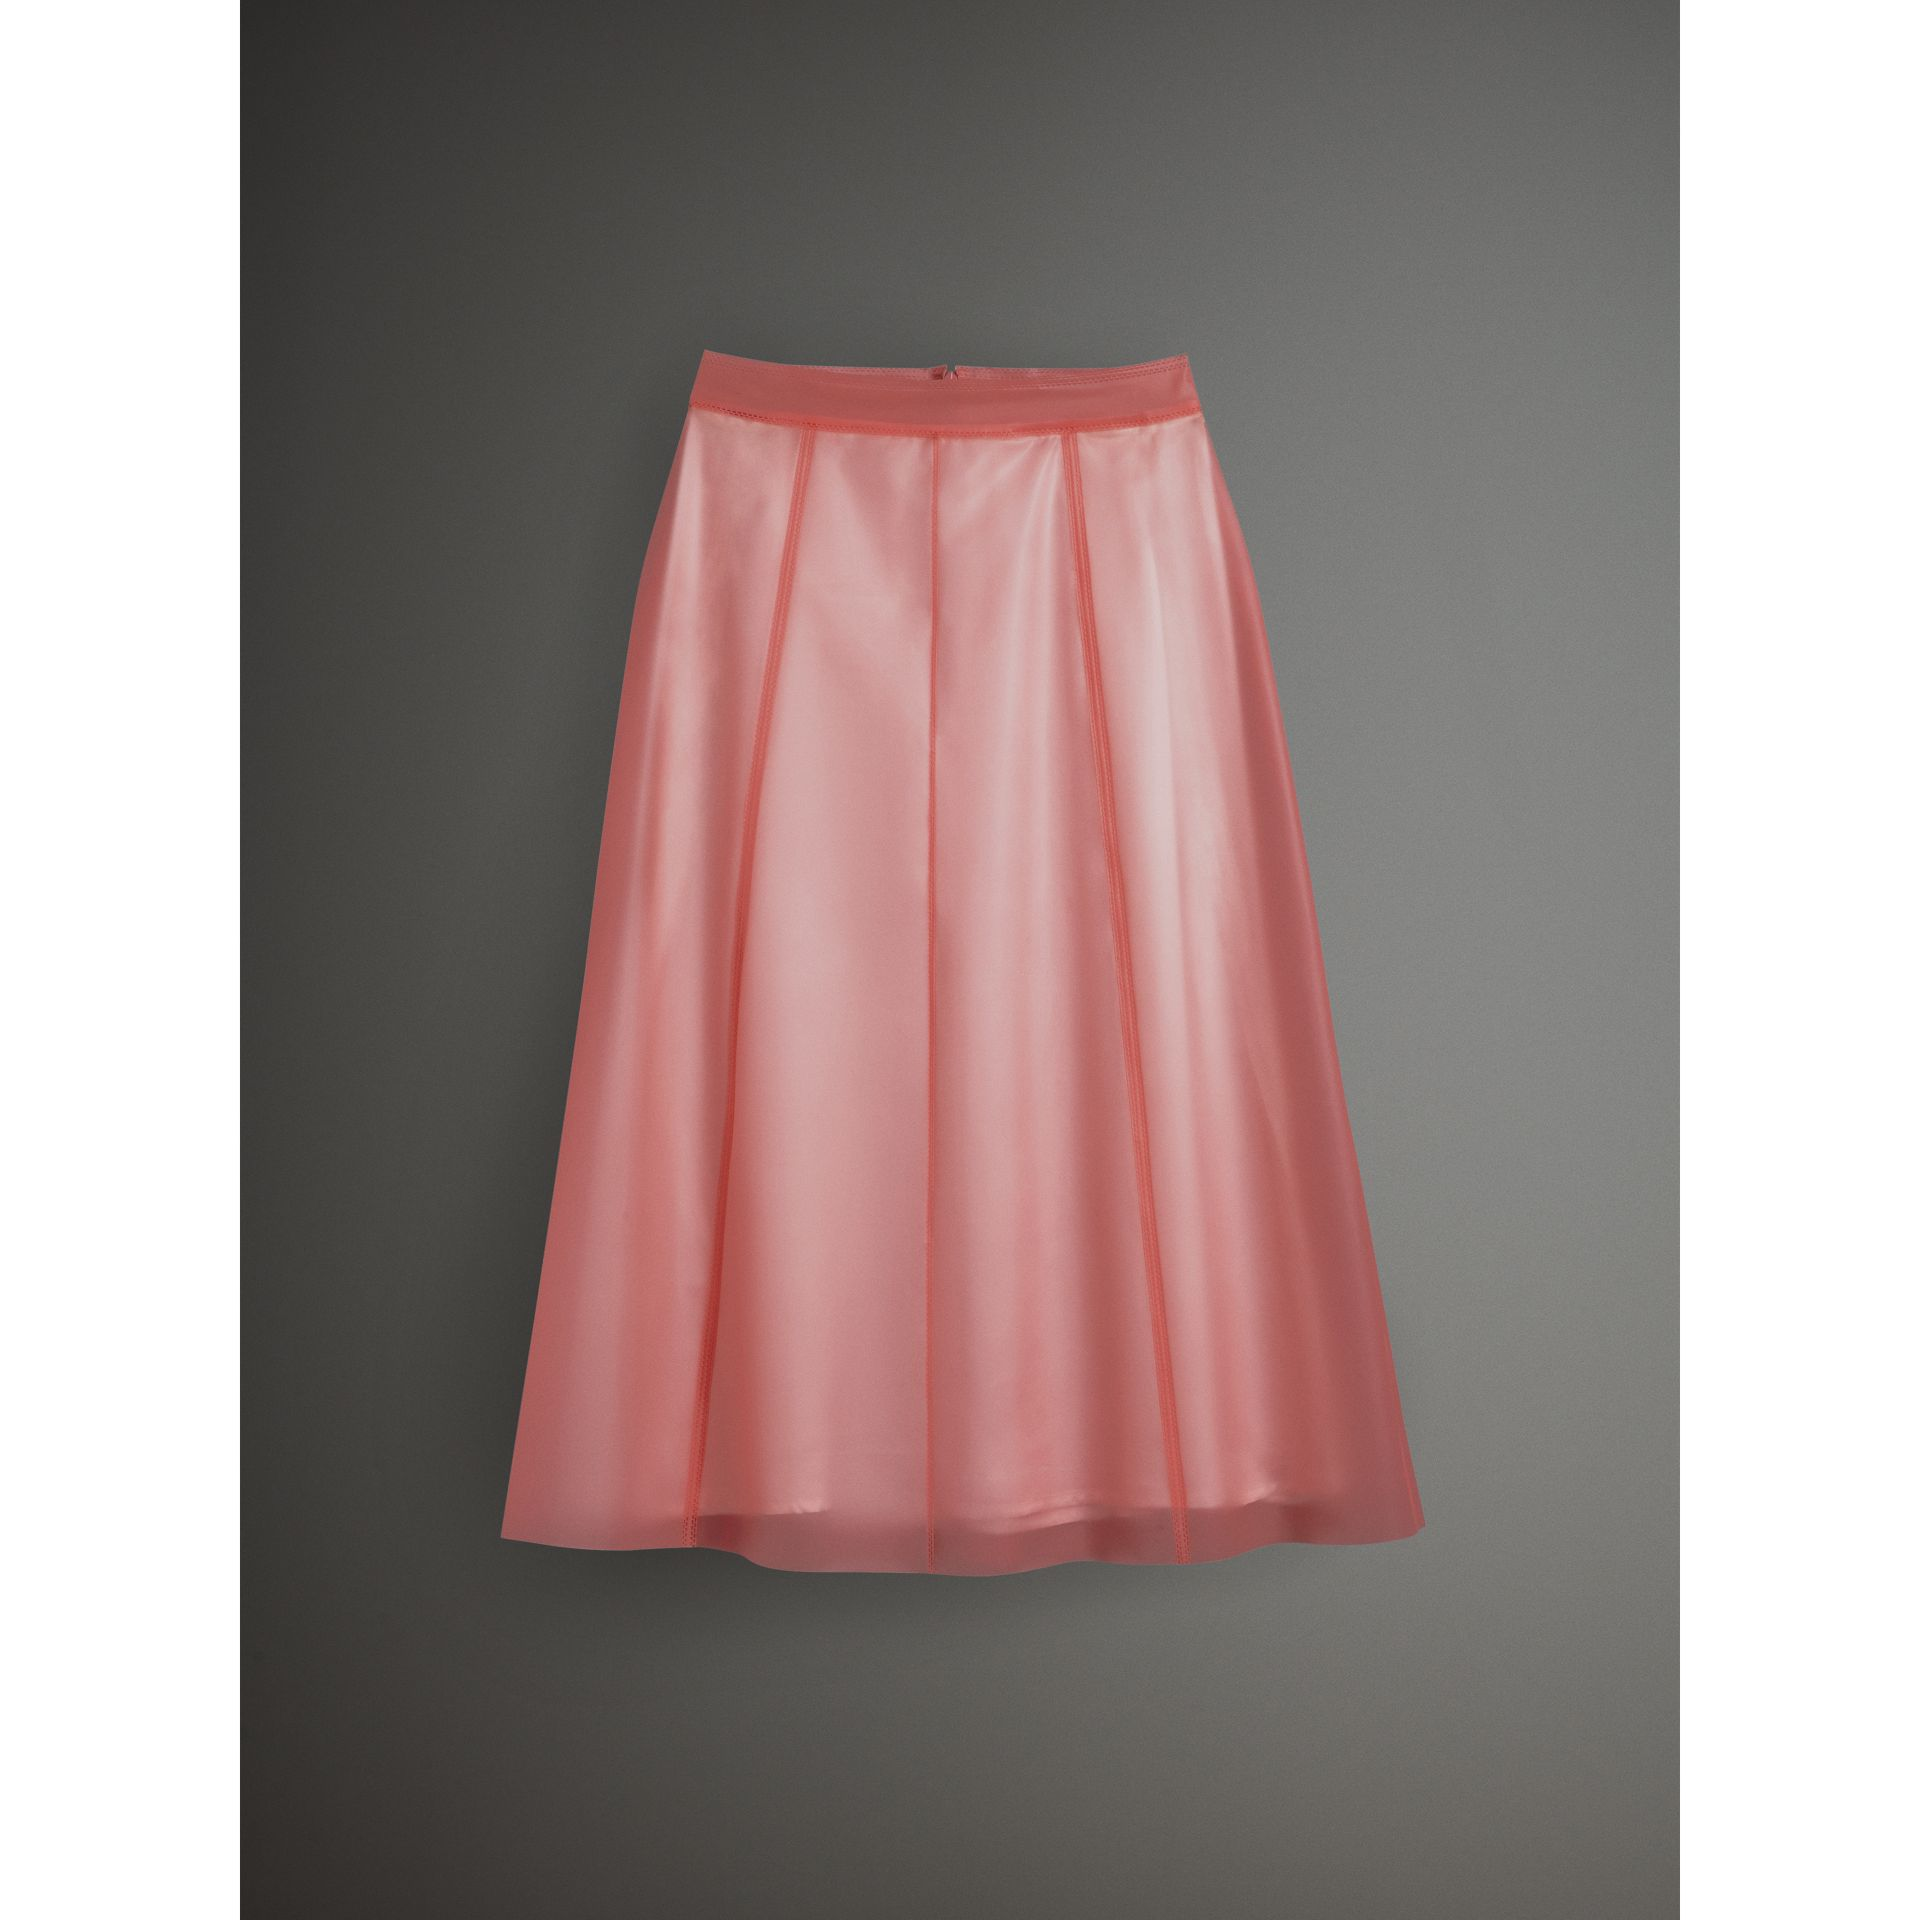 Silk-lined Plastic A-line Skirt in Rose Pink - Women | Burberry United Kingdom - gallery image 3